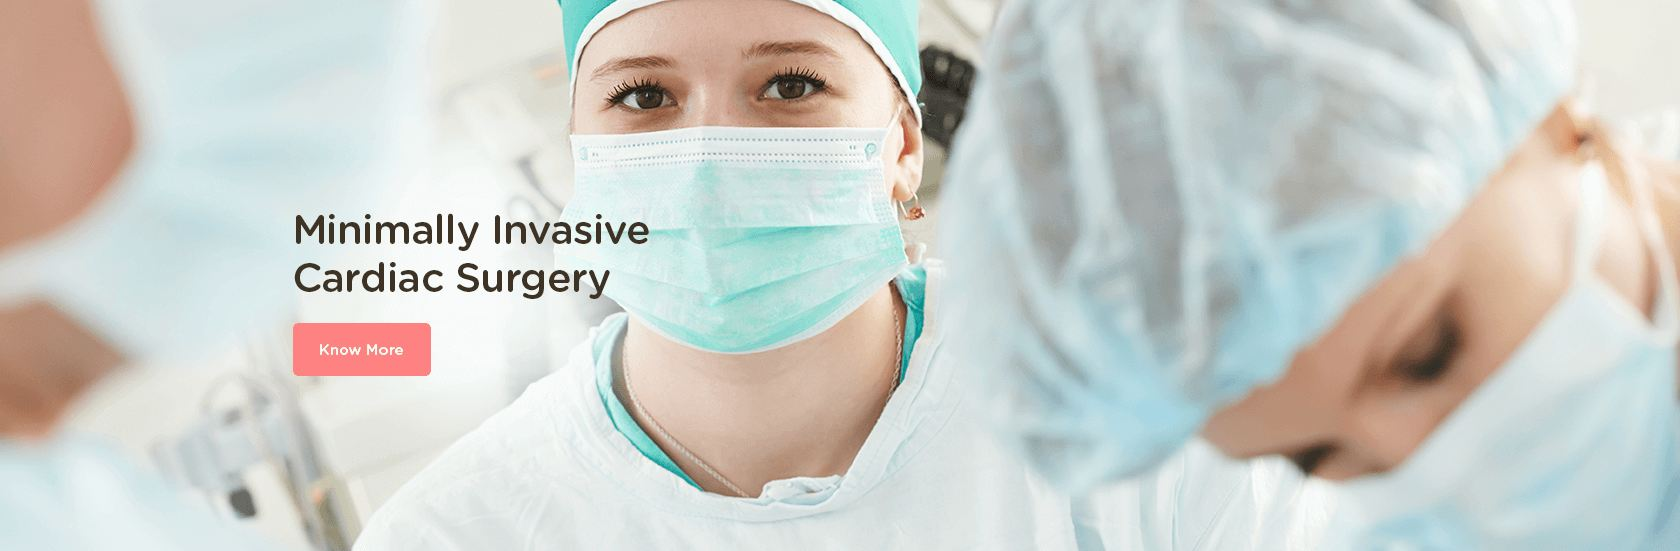 Best Multispeciality Hospital in Bangalore India | Super Speciality